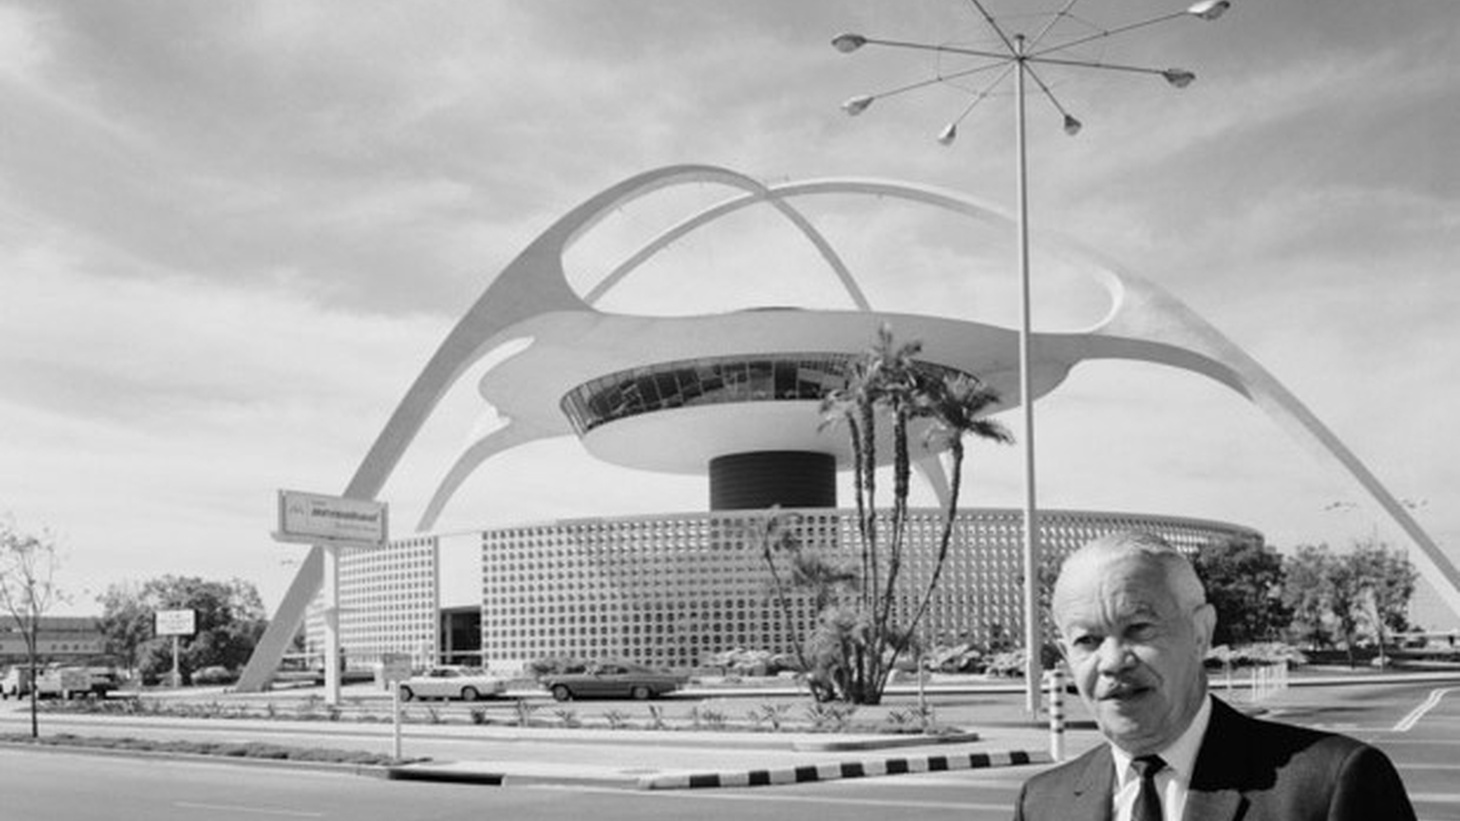 Paul Revere Williams was part of the team that designed the Theme Building at Los Angeles International Airport.